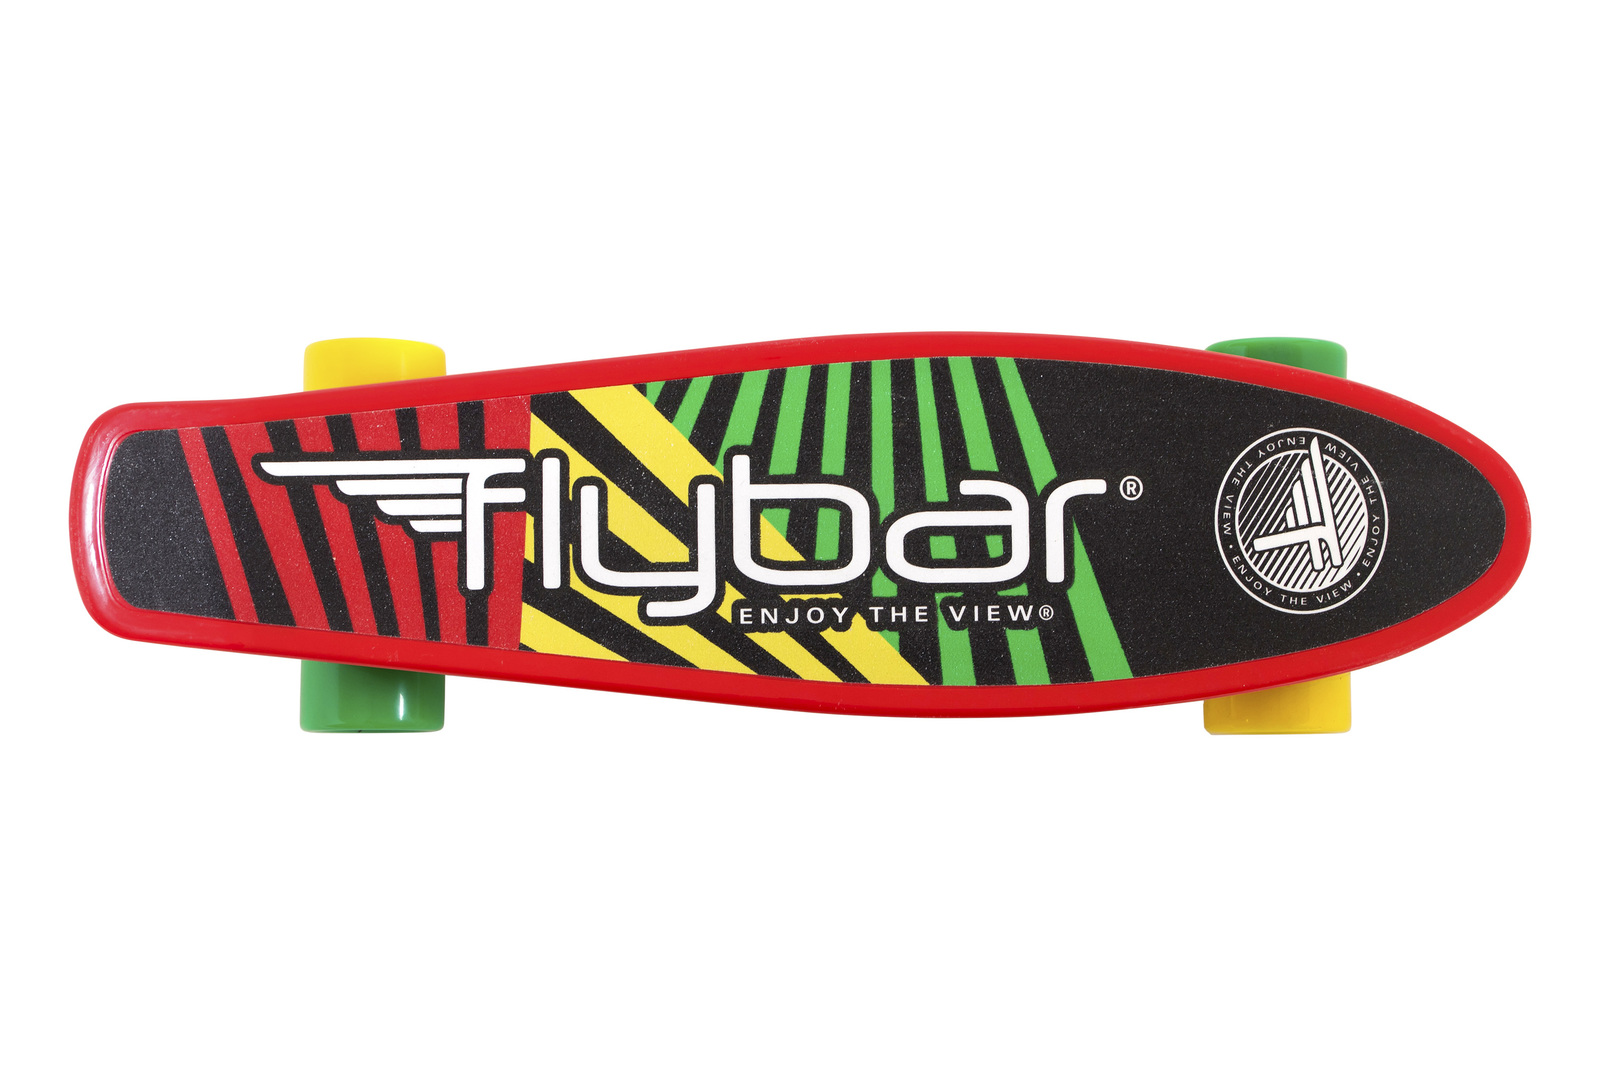 "Flybar: Grip Tape Cruiser - 22"" Skateboard (Red Flag) image"